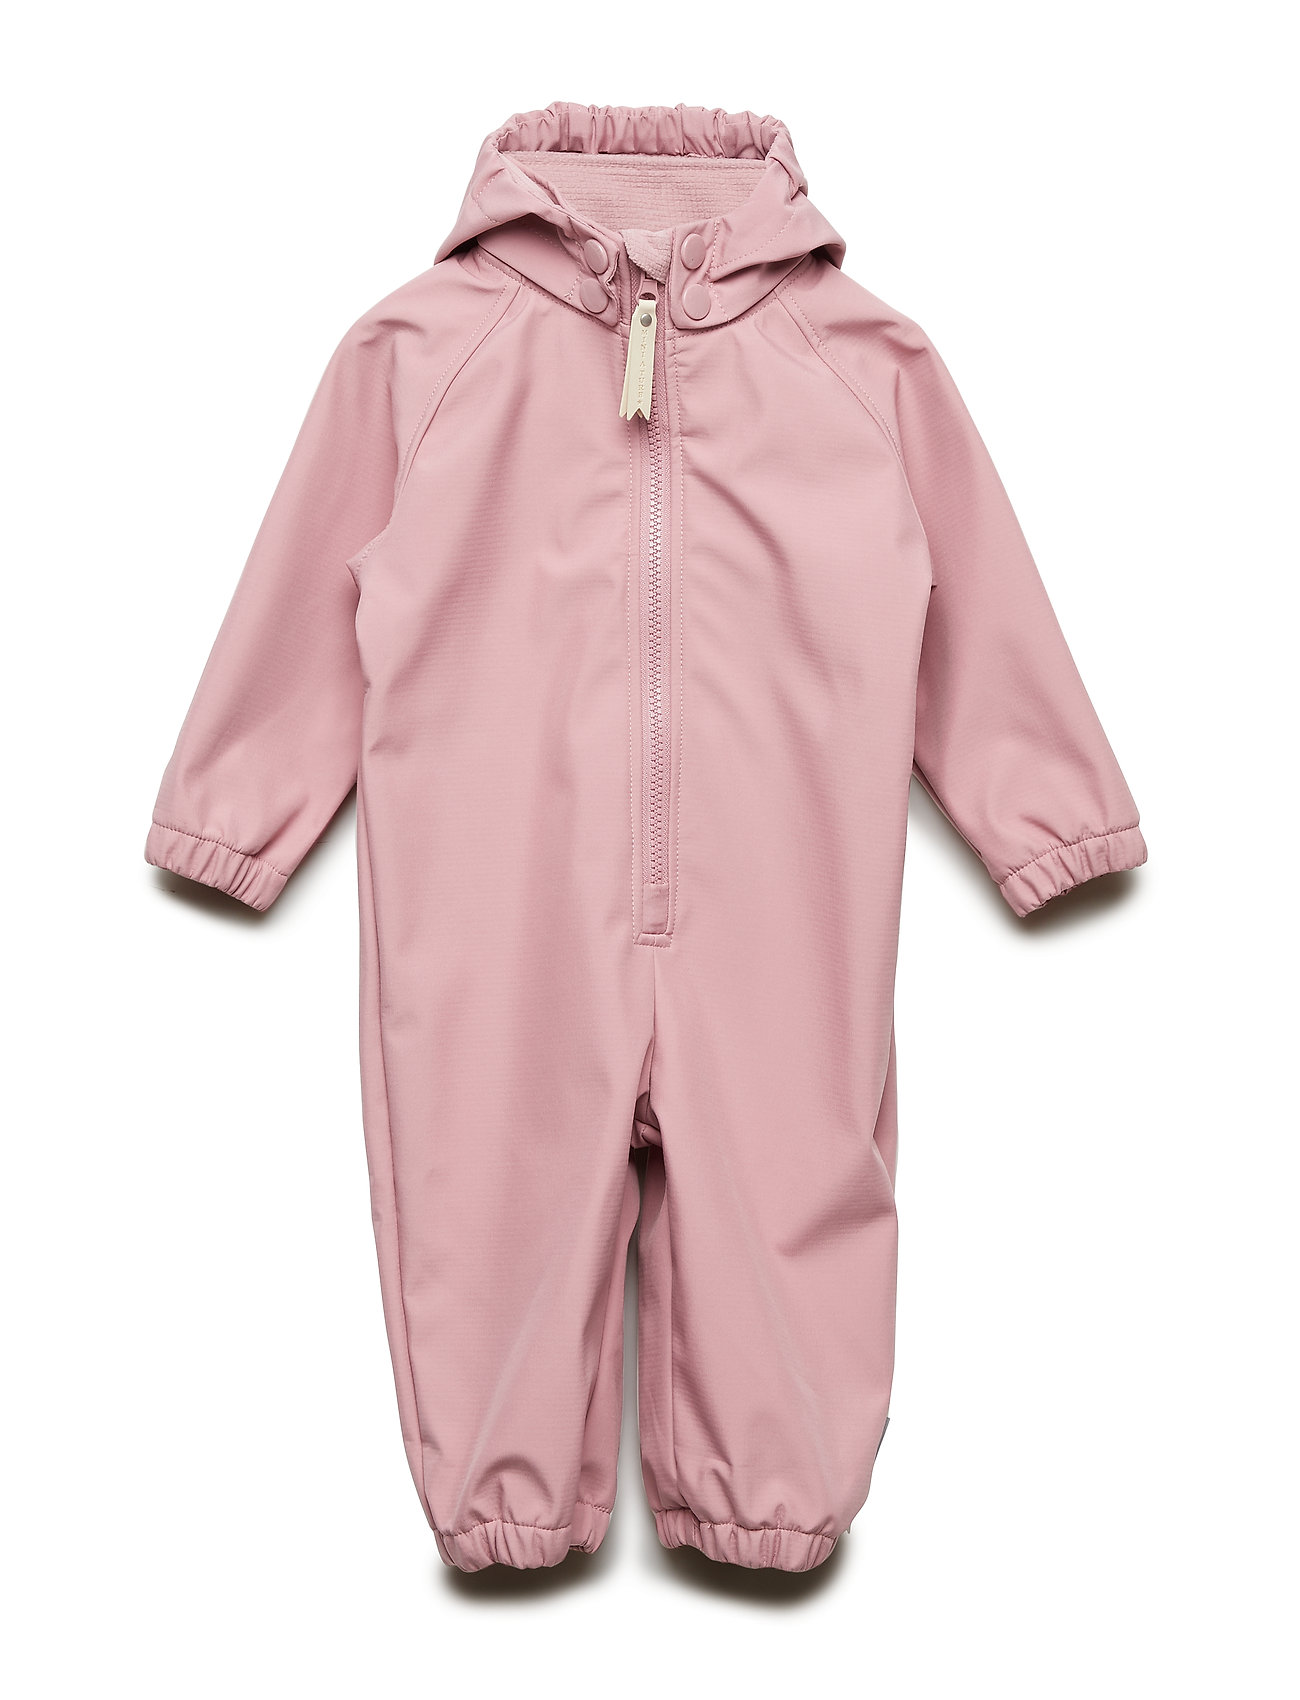 Mini A Ture Arno Suit, M